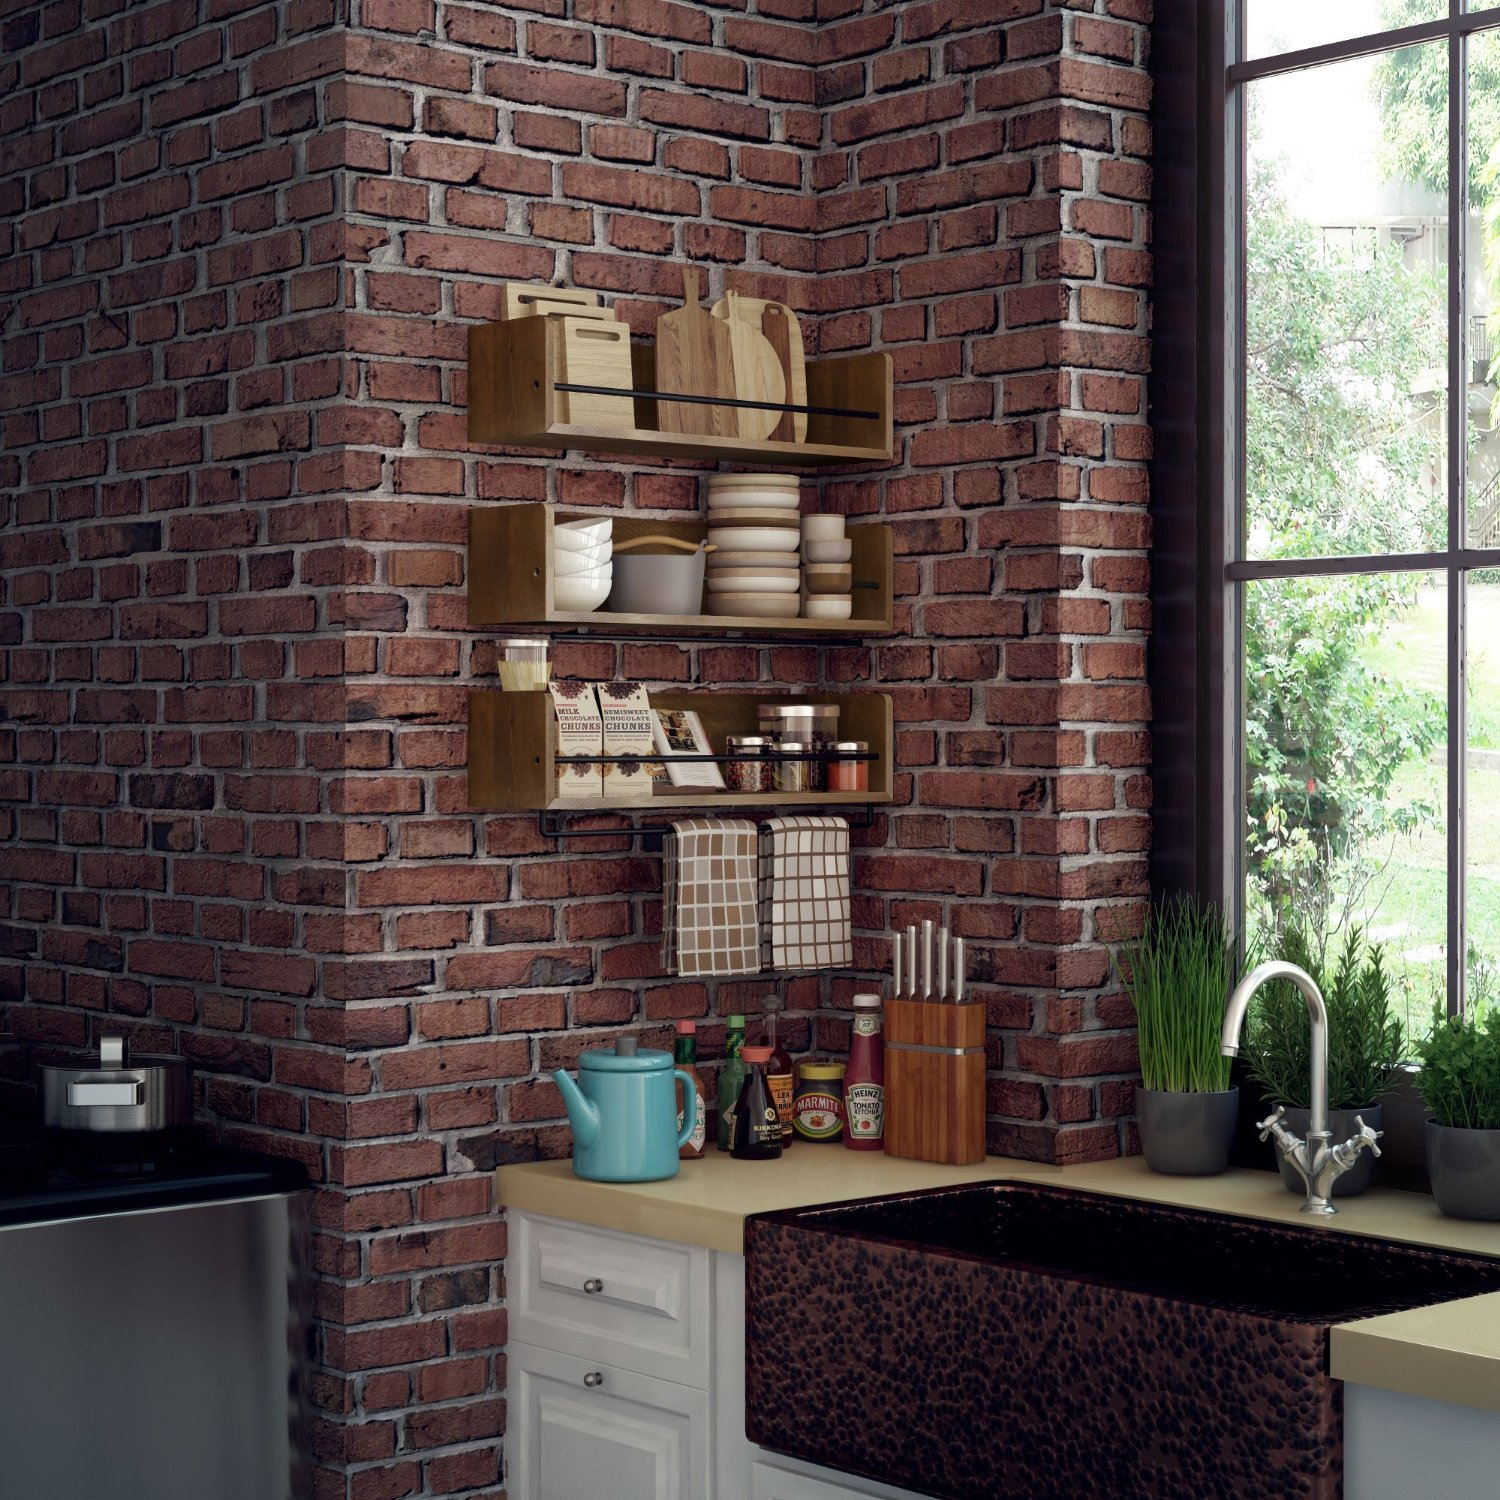 Image of: 30 Spice Rack Ideas Clever Practical Spice Storage Options Photos